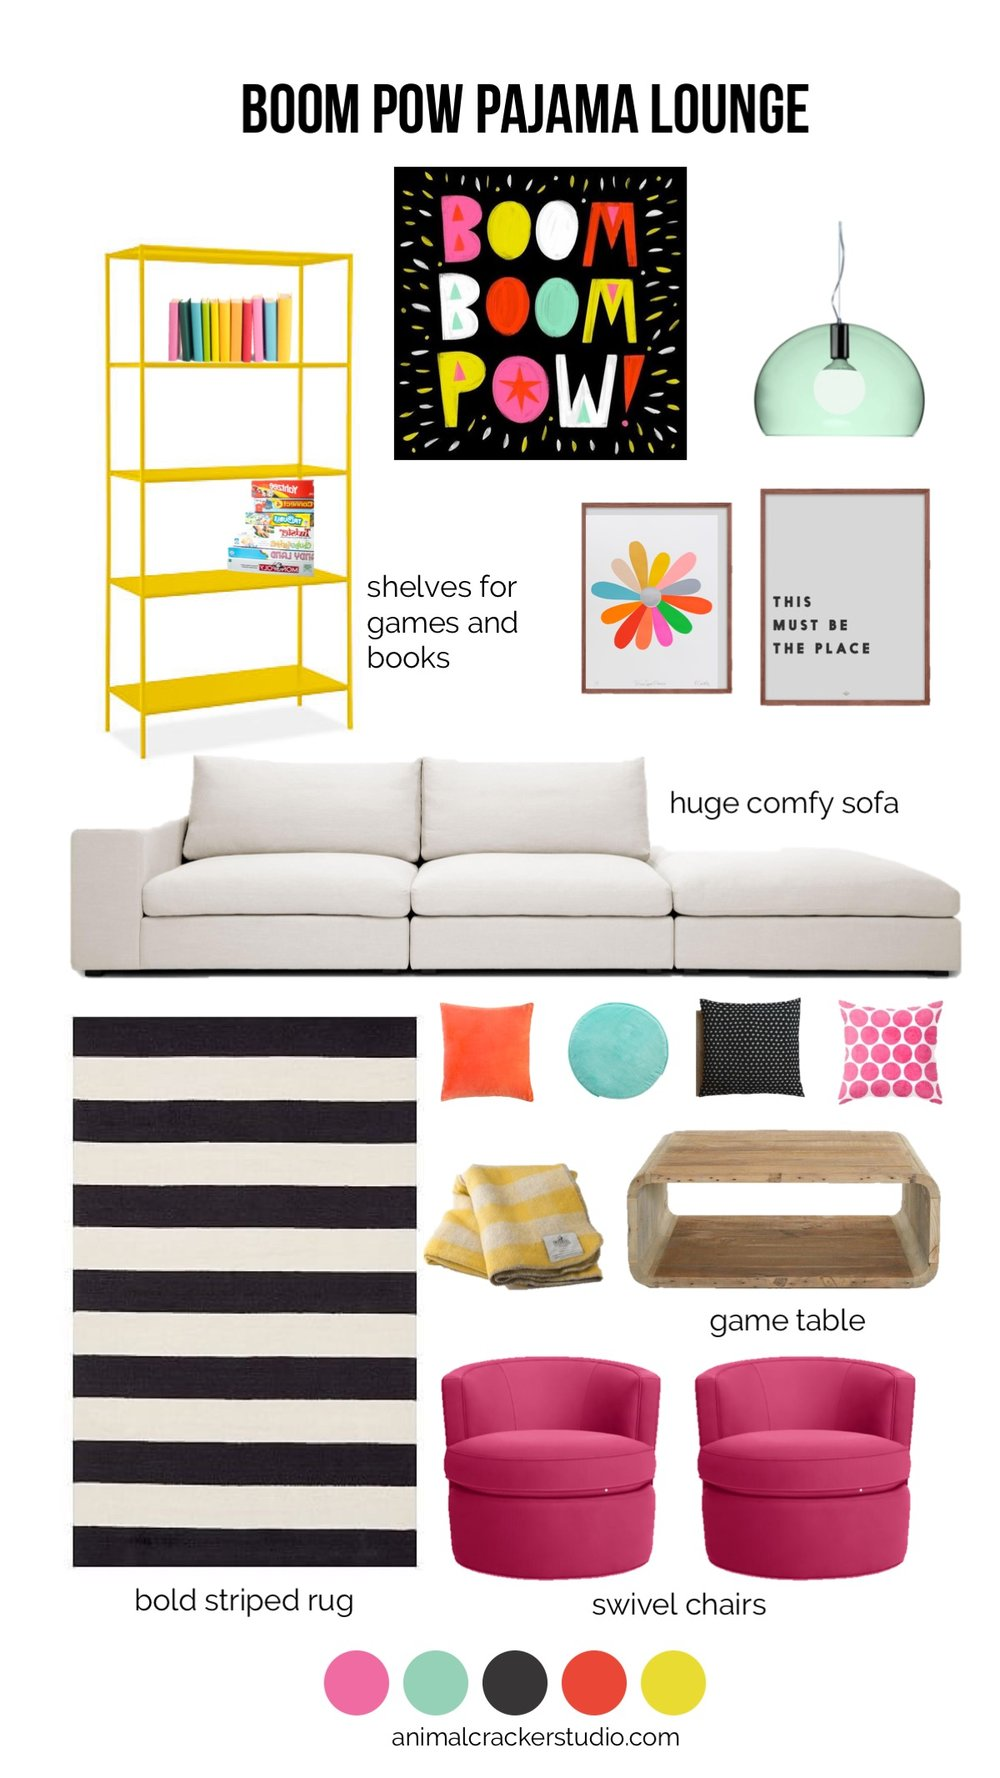 Boom boom pow inspiration image by  Allison Black Illustration . Product sources:  Shelf ,  light ,  flower print ,  place print ,  sofa ,  rug ,  coffee table , red pillow (not available),  black pillow , pink pillow (no longer available but still available in  mint  or  yellow ),  mint pillow ,  yellow blanket ,  swivel chairs  (shown in Sunbrella canvas pink). You can also check out items for this post  on my Pinterest board .